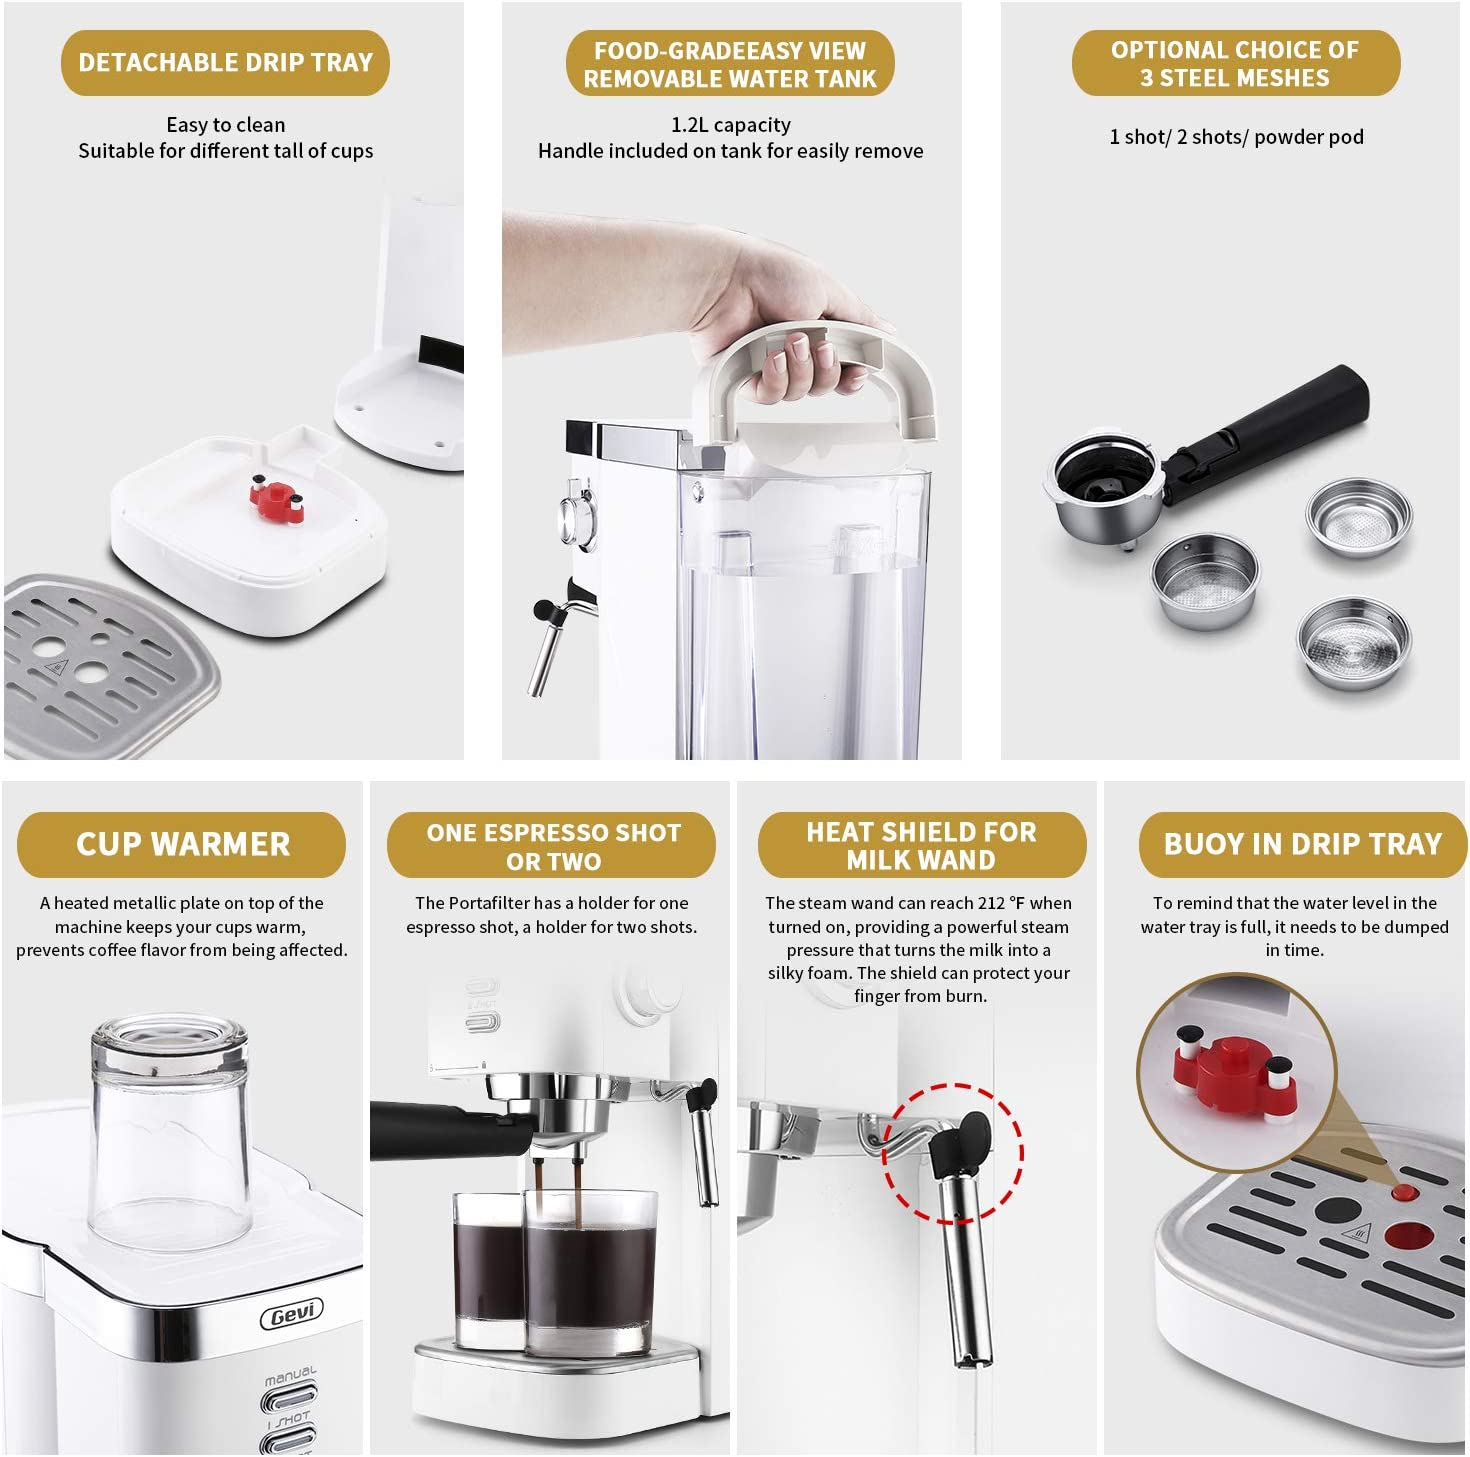 Double Temperature Control System Latte and Mocha 1.2 L Water Tank Espresso Machines Fast Heating Cappuccino Machine 20 Bar with Milk Frother for Espresso White for Home Barista 1350W